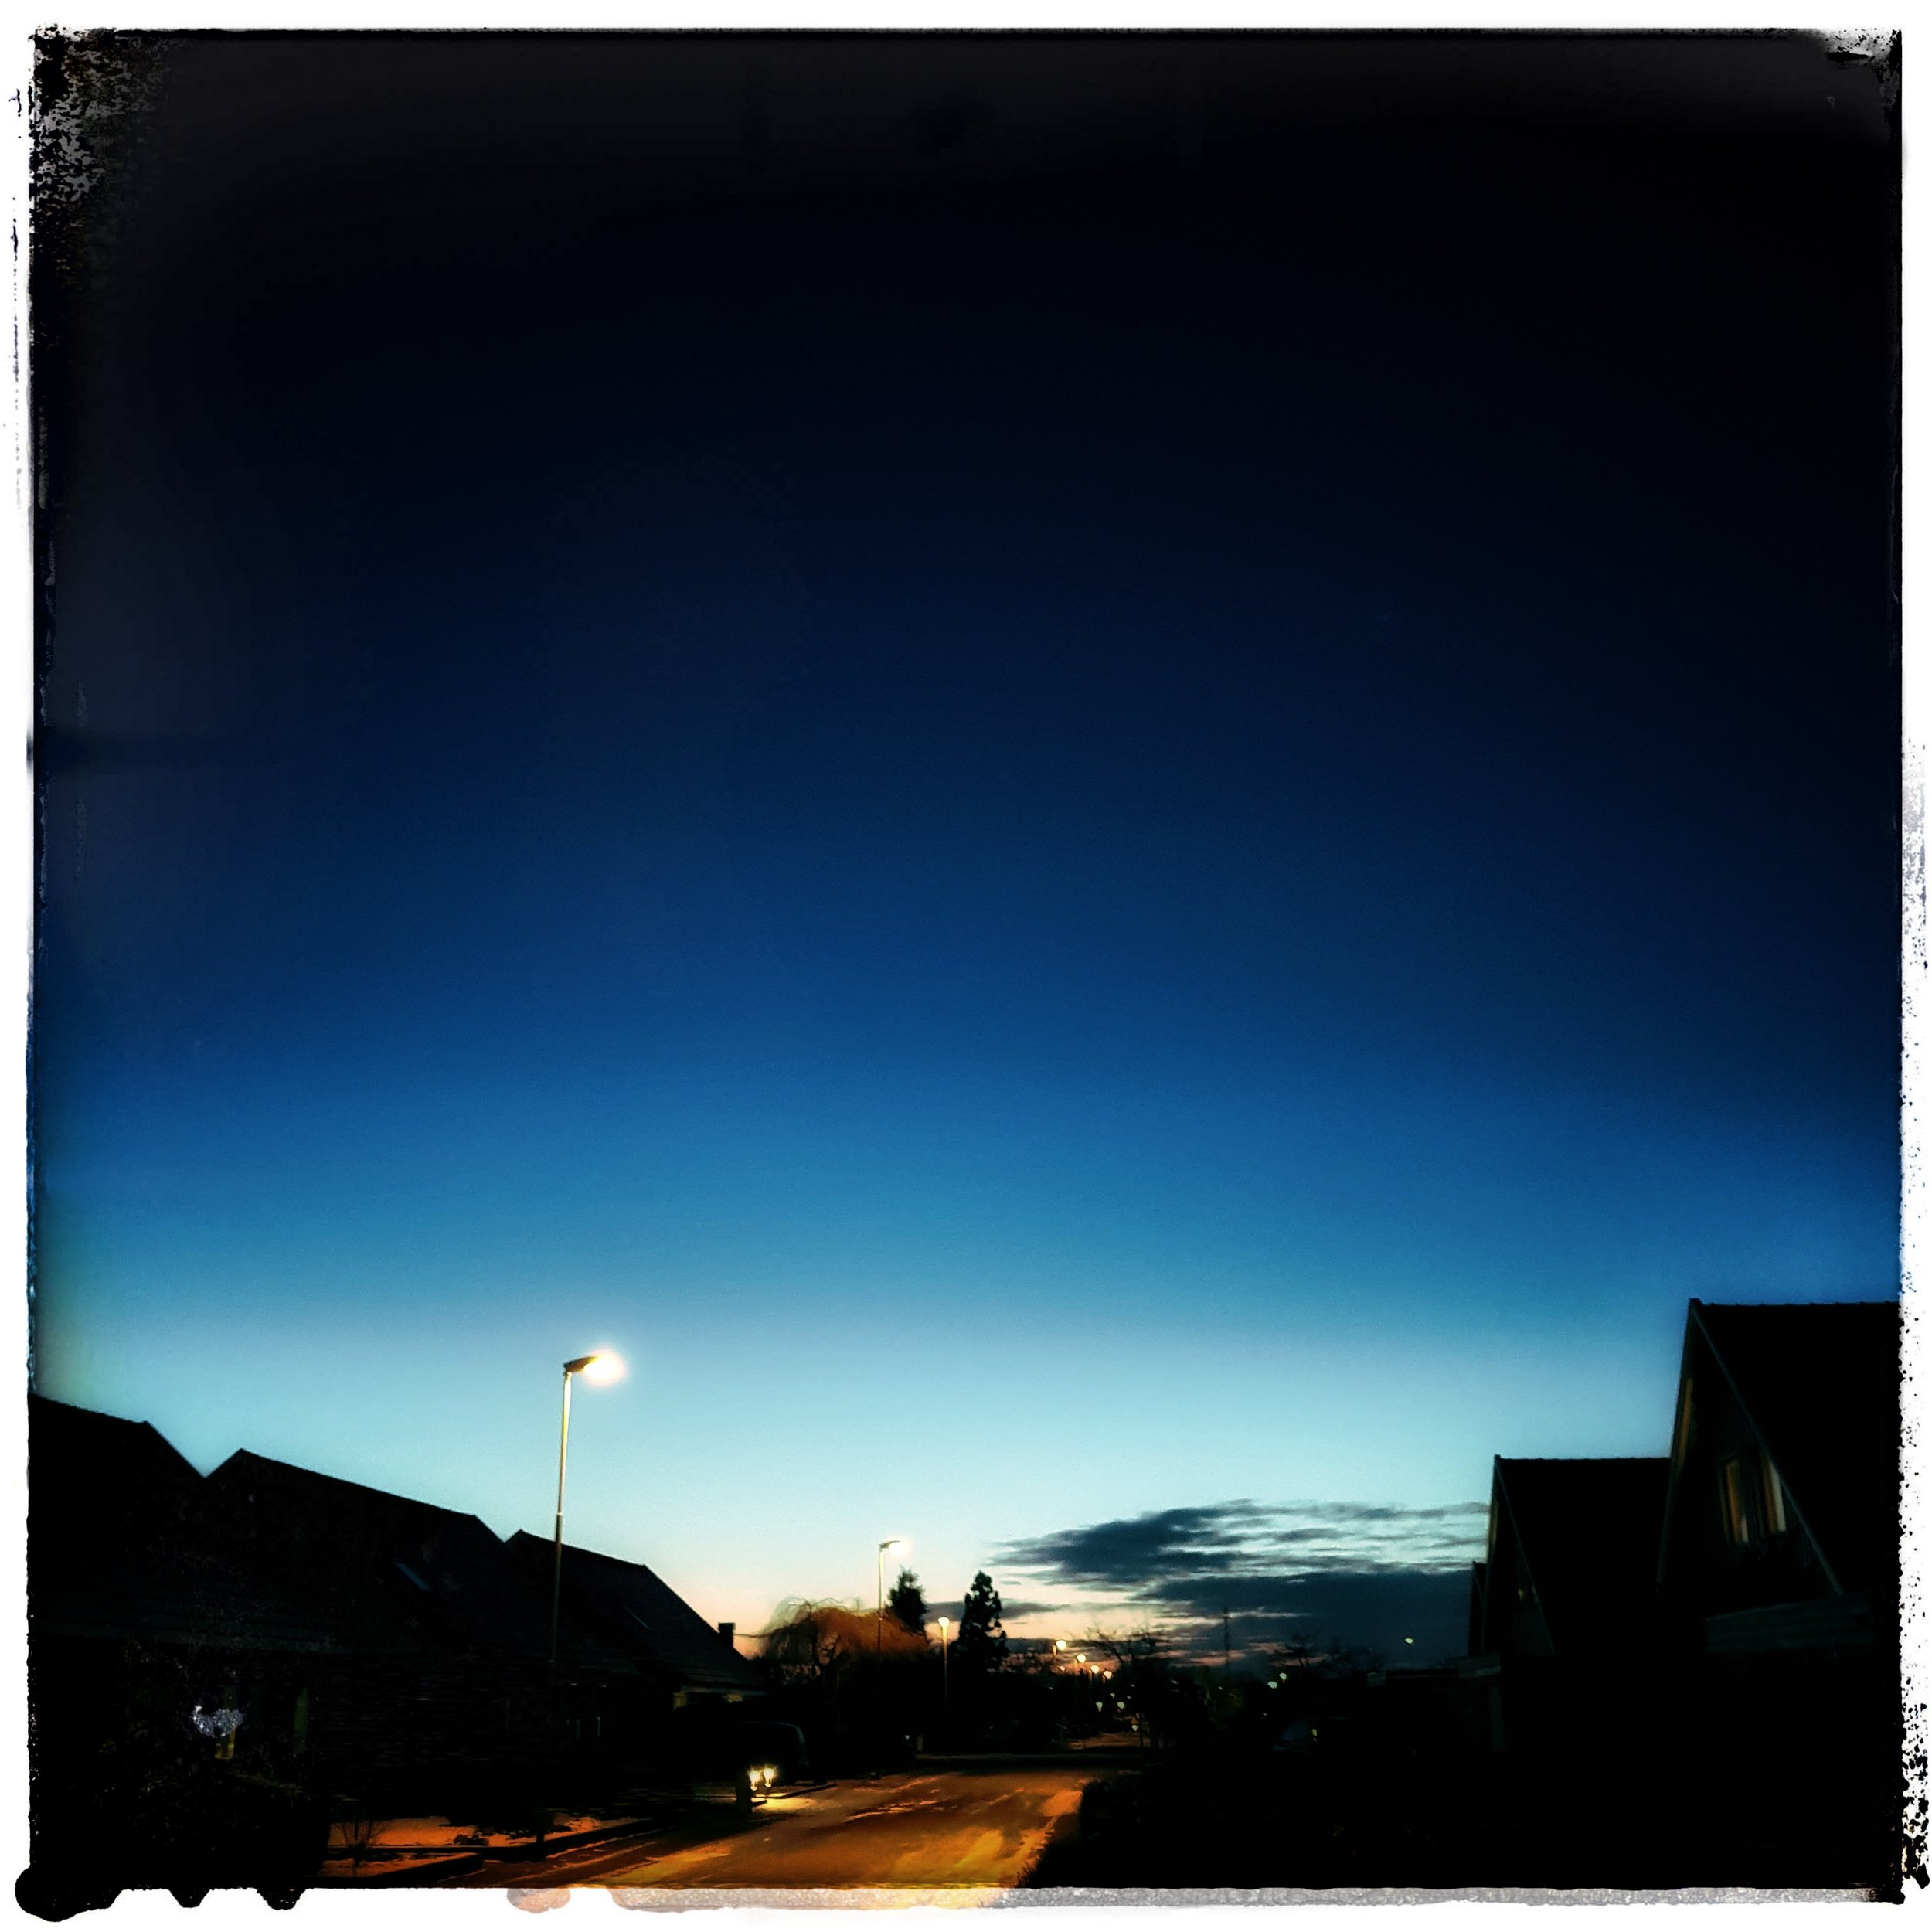 Day 39 - February 8: Last light